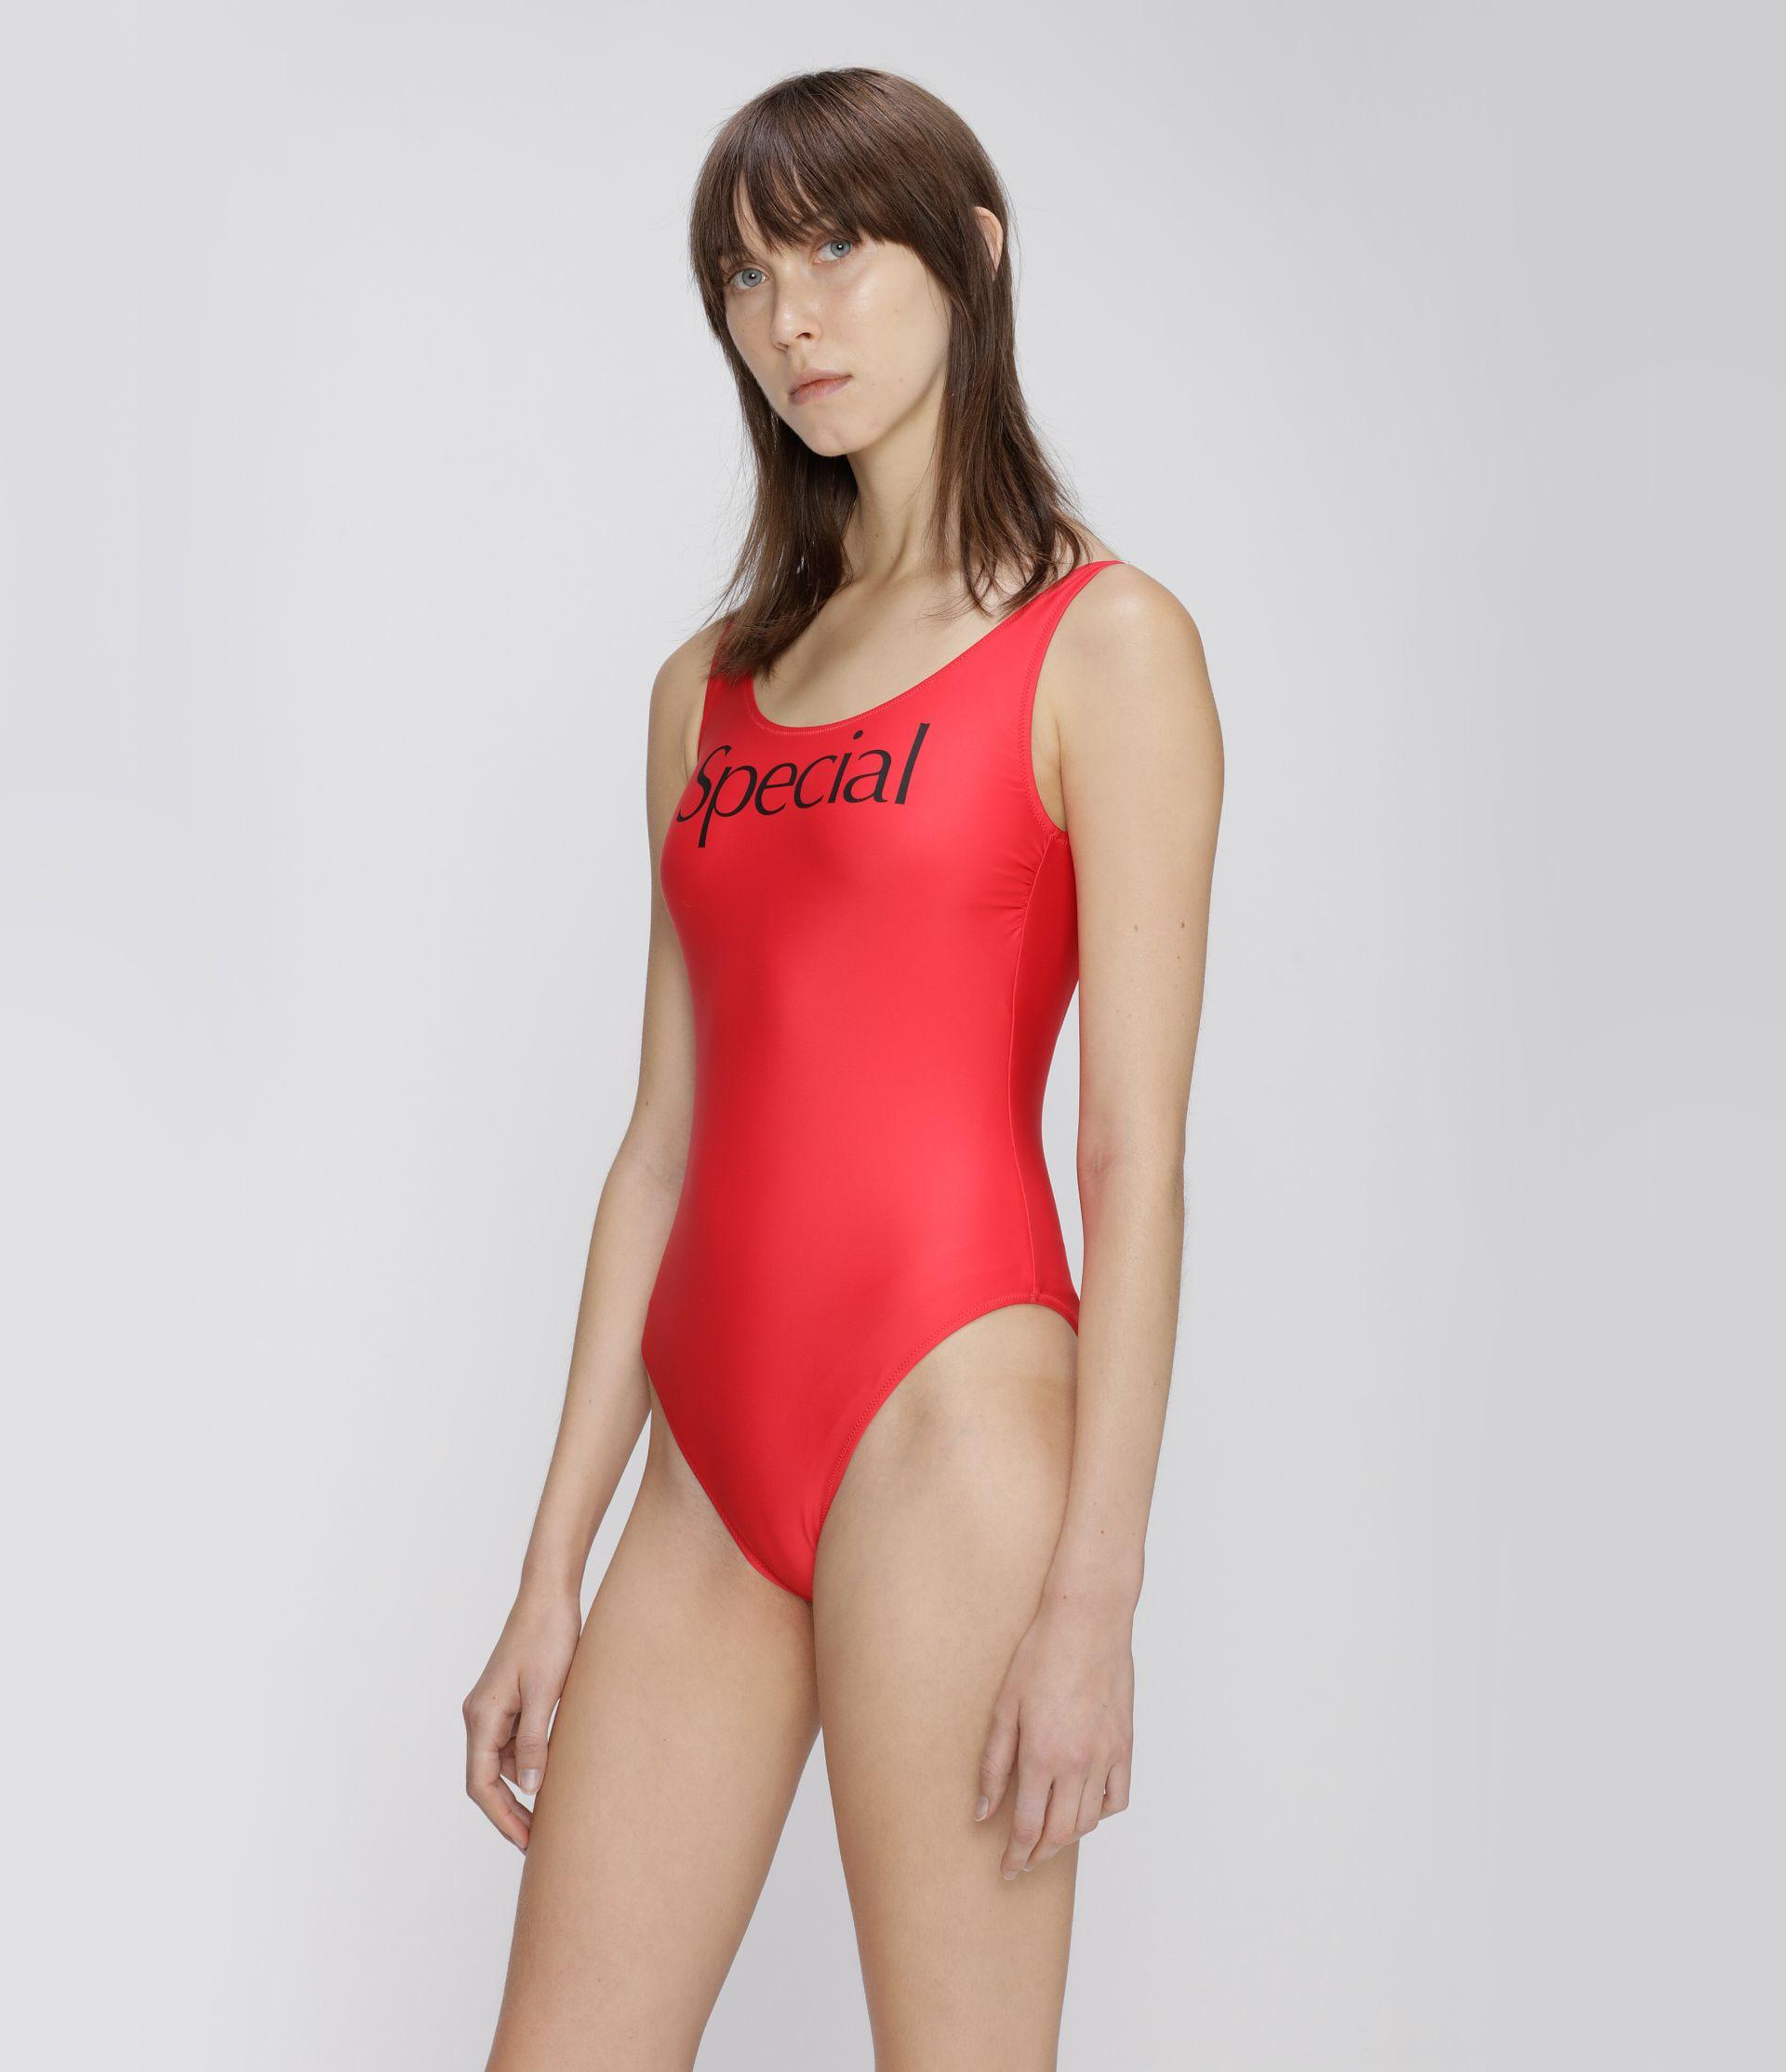 Special swimsuit